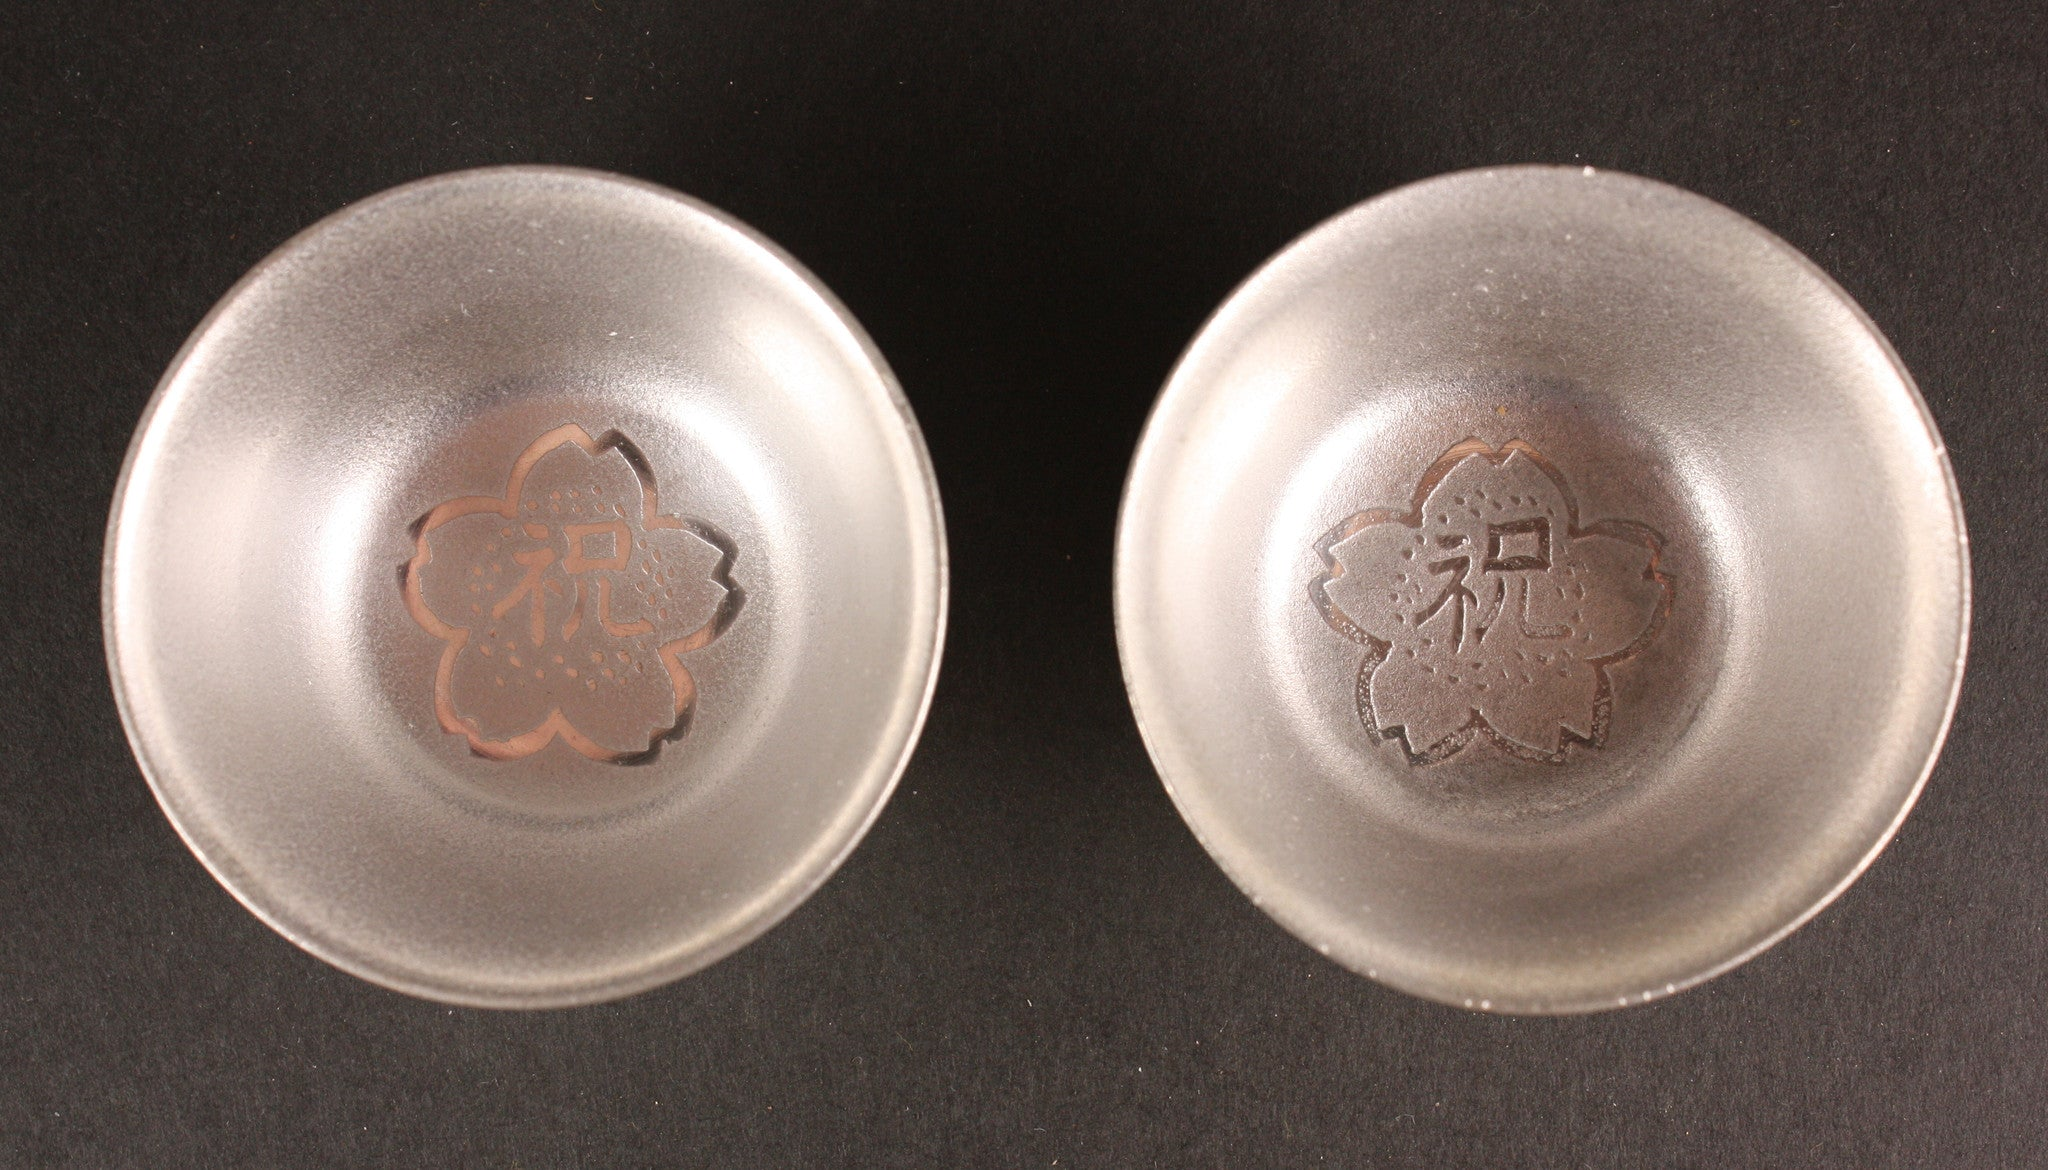 Pair of Antique Japanese Pewter 1919 Term Fulfillment Army Navy Sake Cup